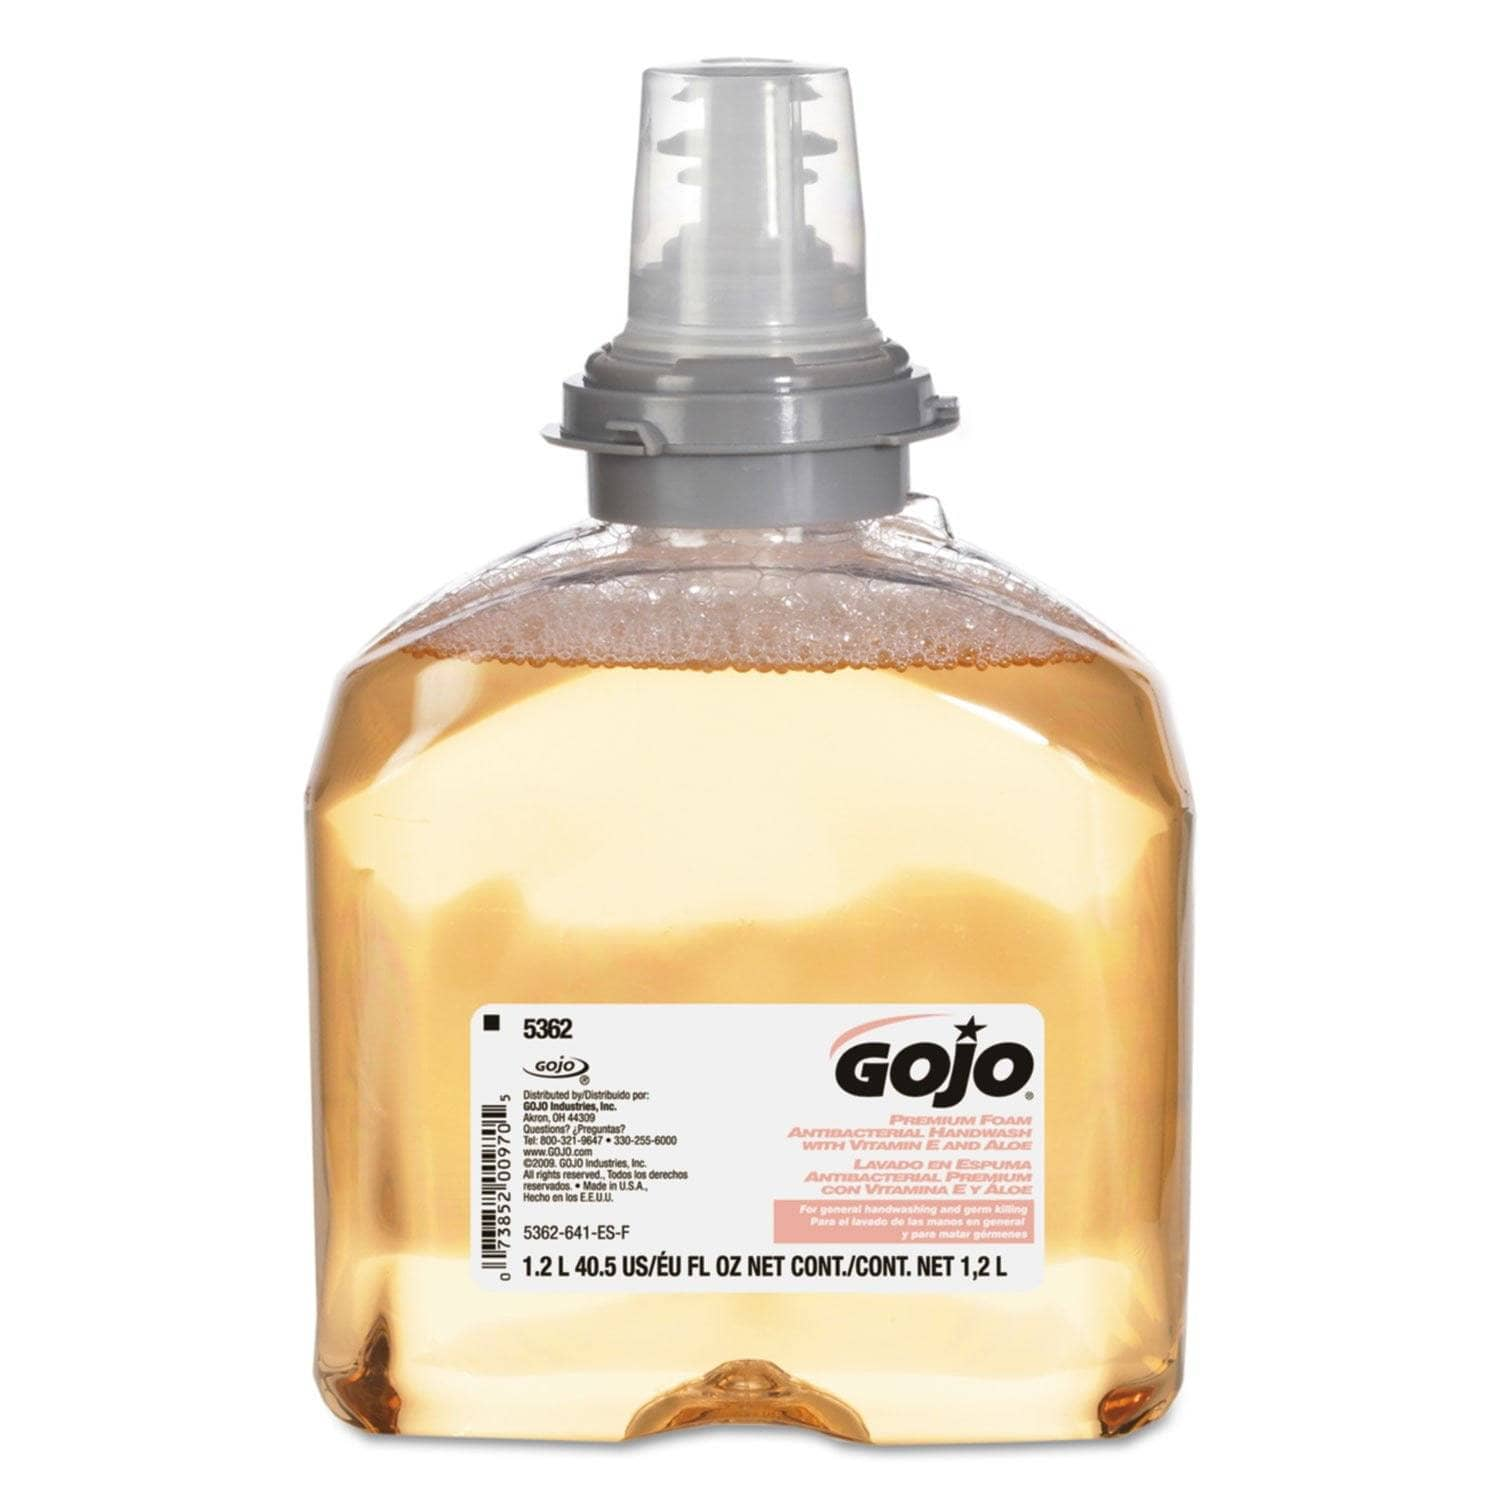 Gojo Premium Foam Antibacterial Hand Wash, Fresh Fruit Scent, 1200Ml, 2/Carton - GOJ536202 - TotalRestroom.com